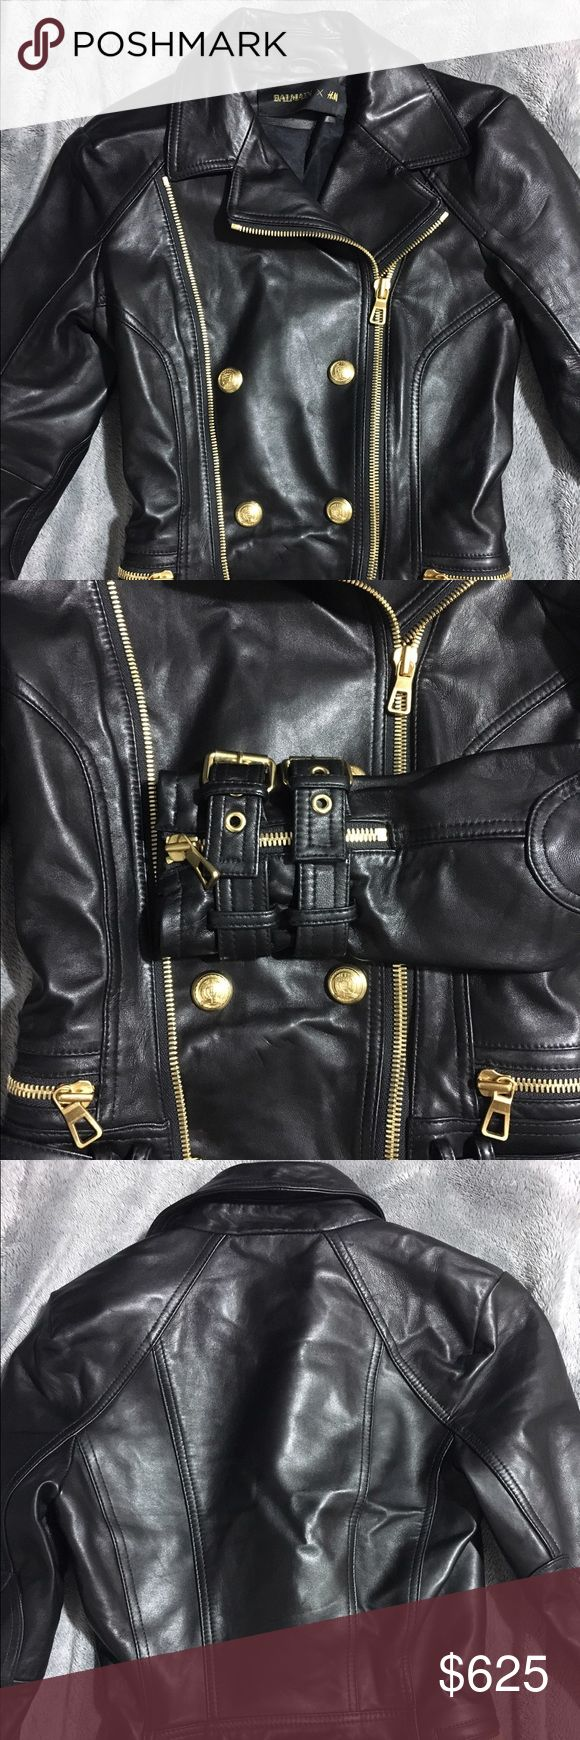 Balmain x H&M Rare Moto Leather Jacket Size: 2 Rare piece from the Balmain x H&M collection. Leather with gold accents. Size: 2 *Excellent Condition* Balmain Jackets & Coats